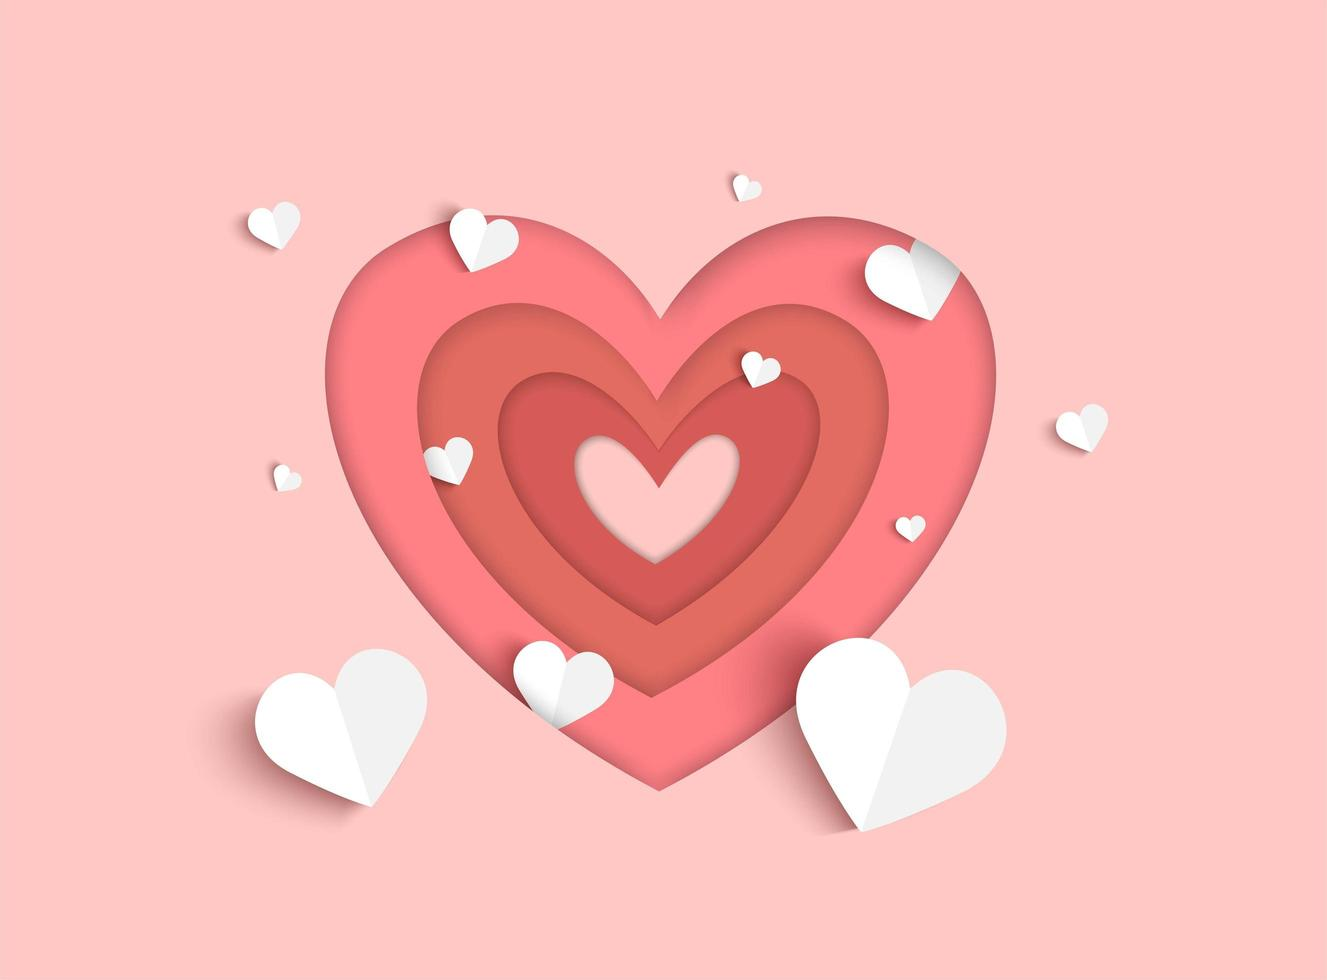 Valentines day pink background with white paper cut style hearts and layered heart shape vector